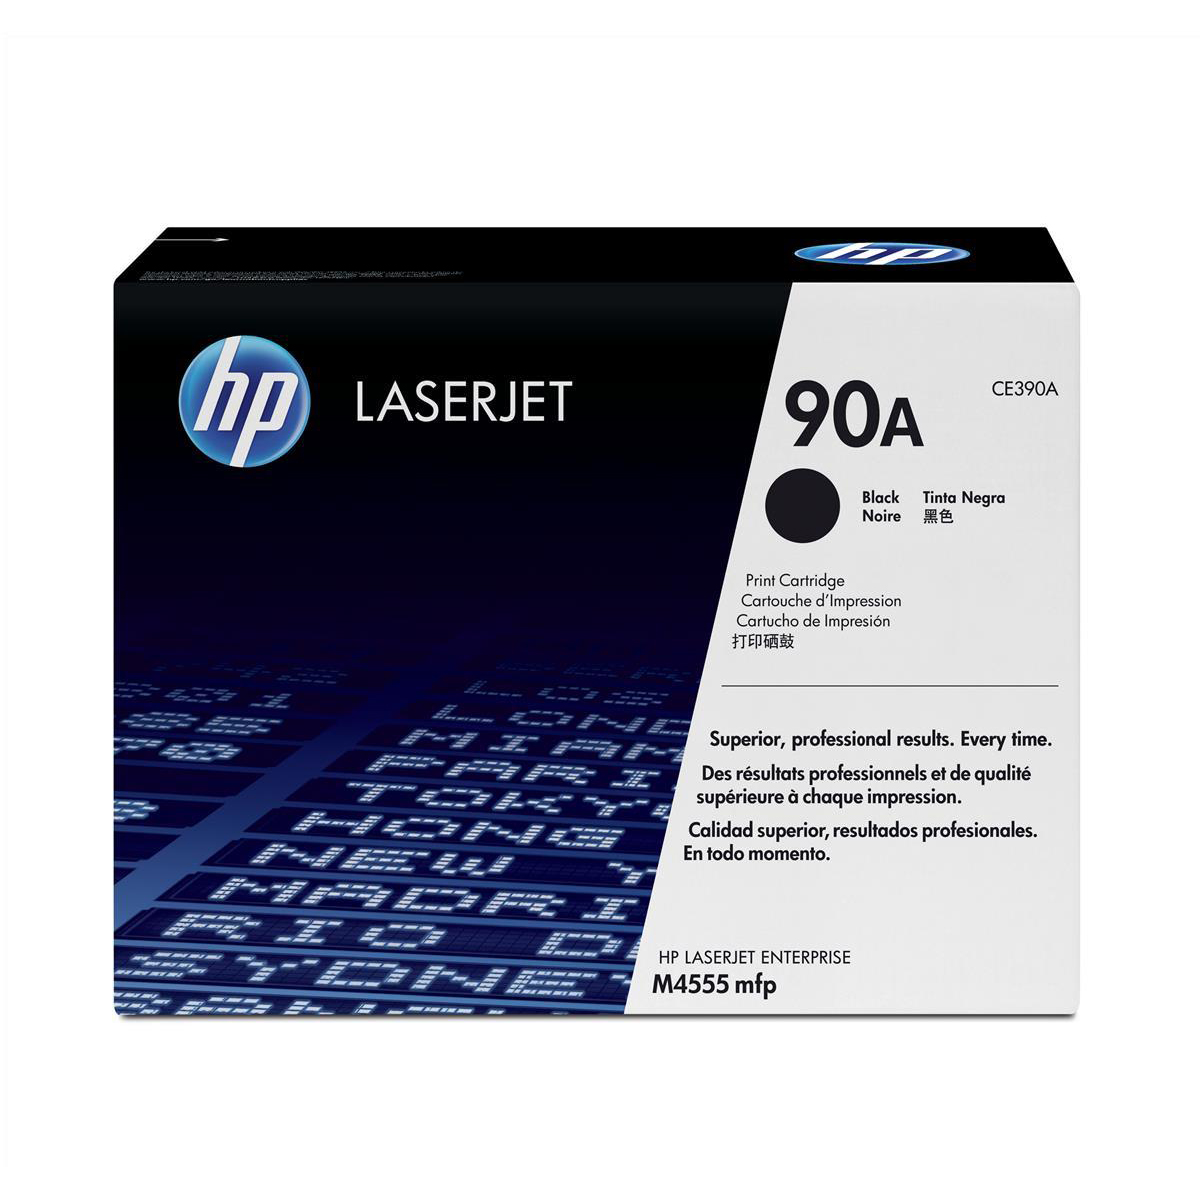 HP 90A Laser Toner Cartridge Page Life 10,000pp Black Ref CE390A